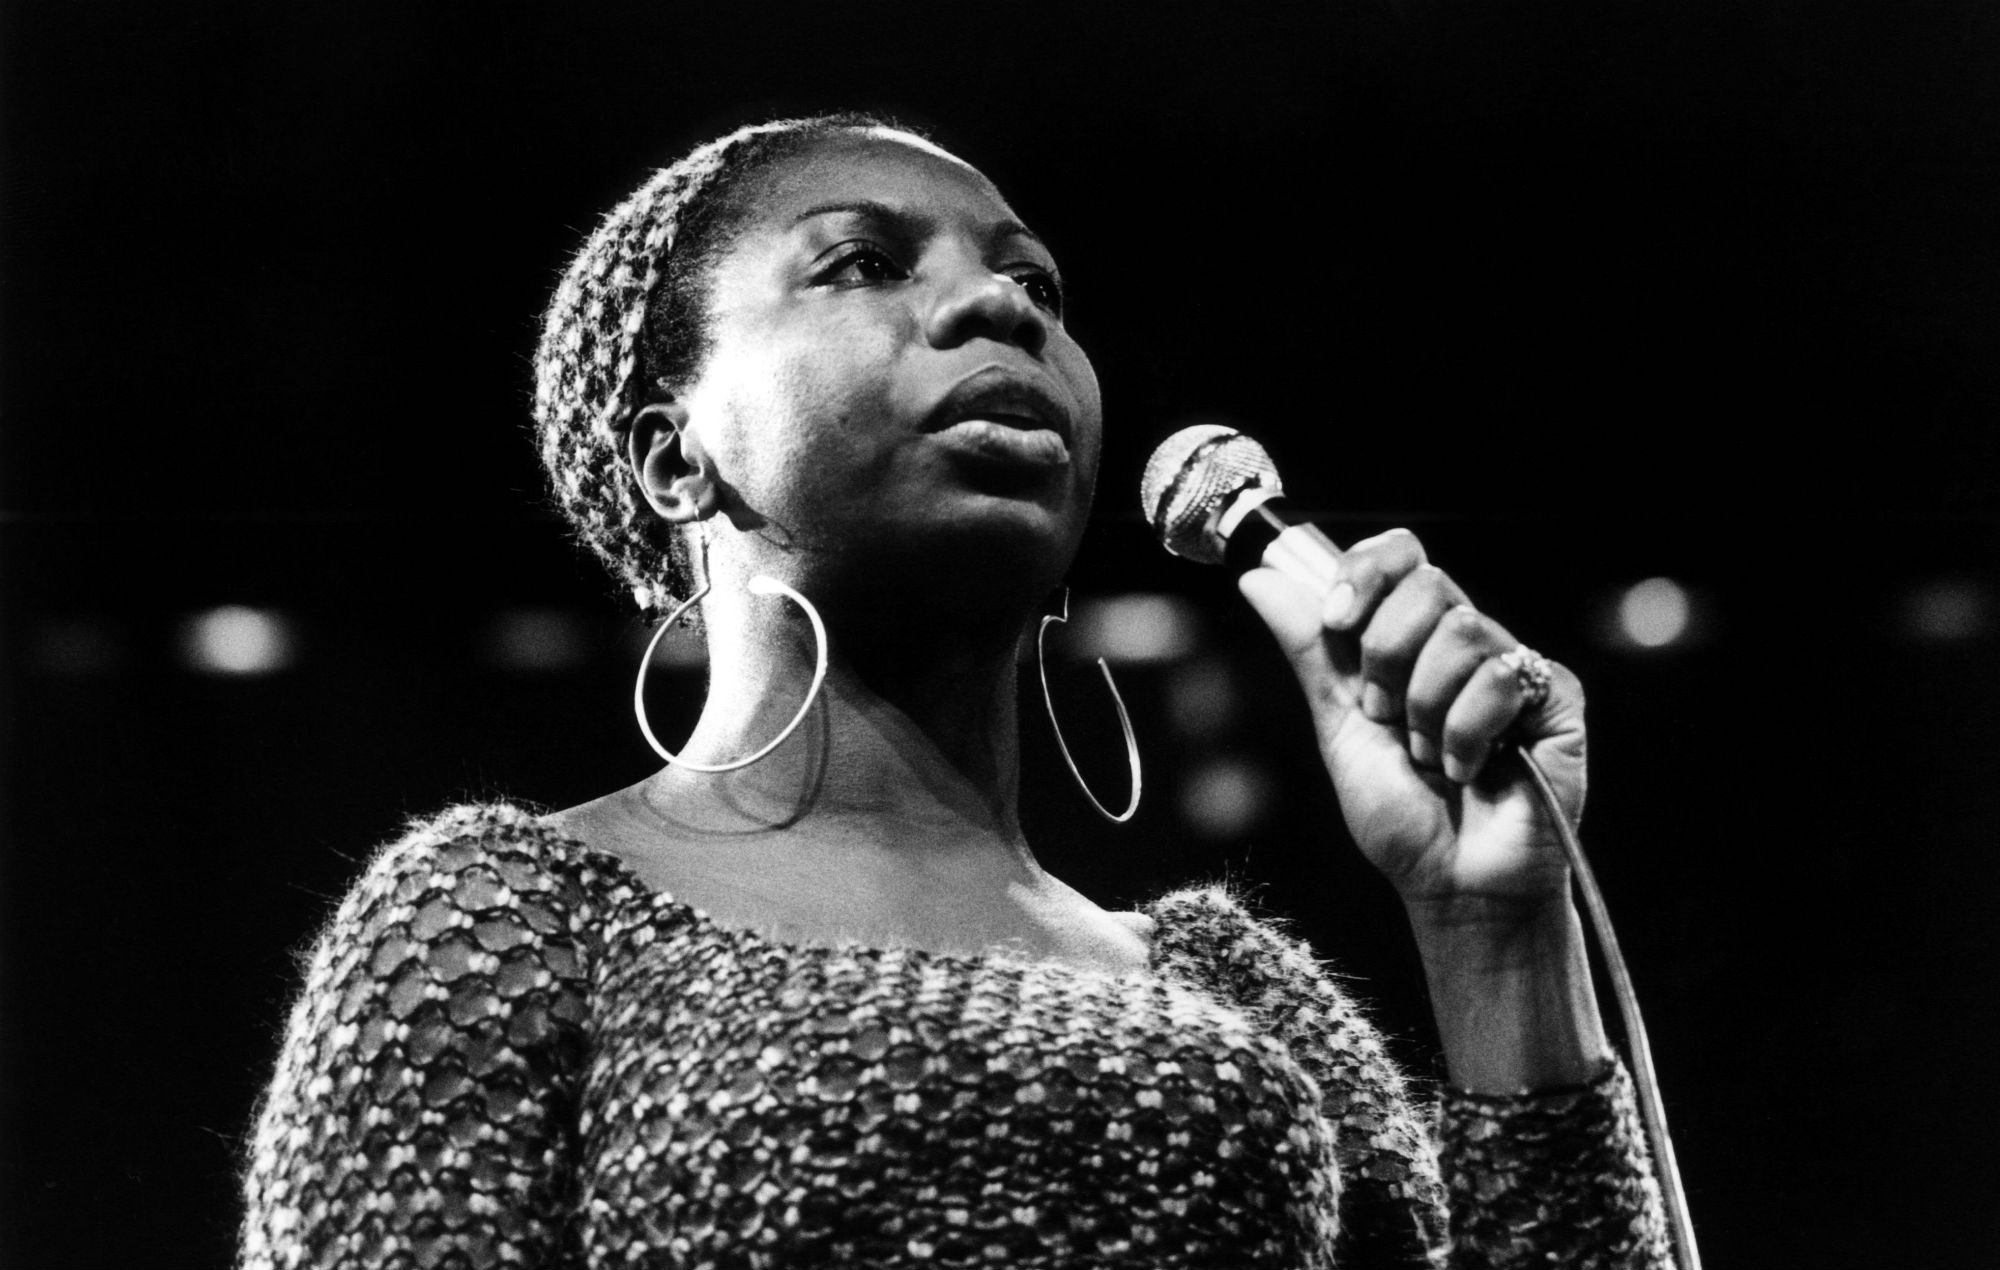 NME Music News, Reviews, Videos, Galleries, Tickets and Blogs | NME.COM | Montreux Jazz Festival releases free streams of performances by Nina Simone, Marvin Gaye and others